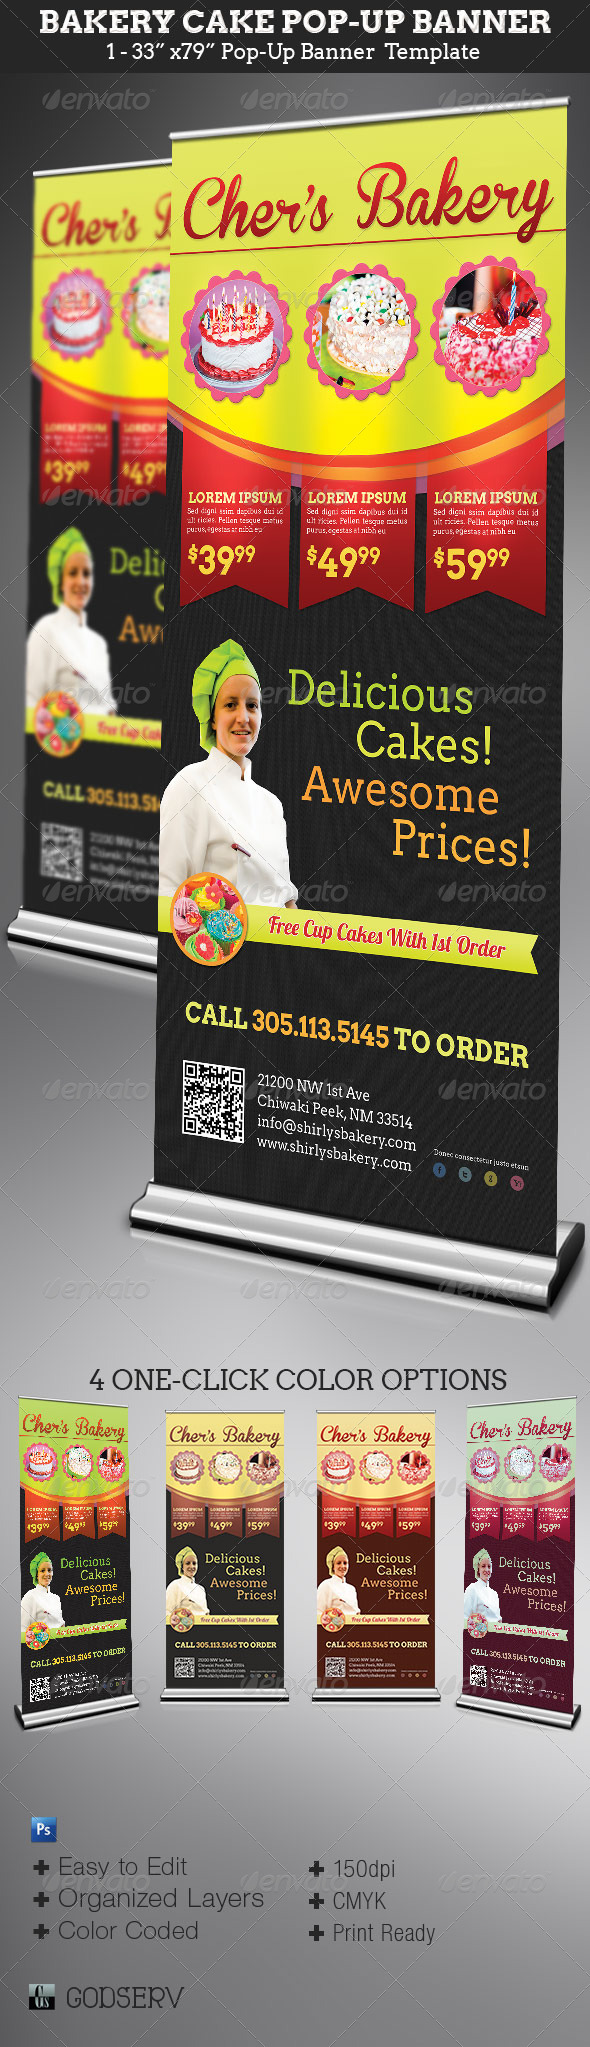 Bakery Cake Pop-Up Banner Template - Signage Print Templates